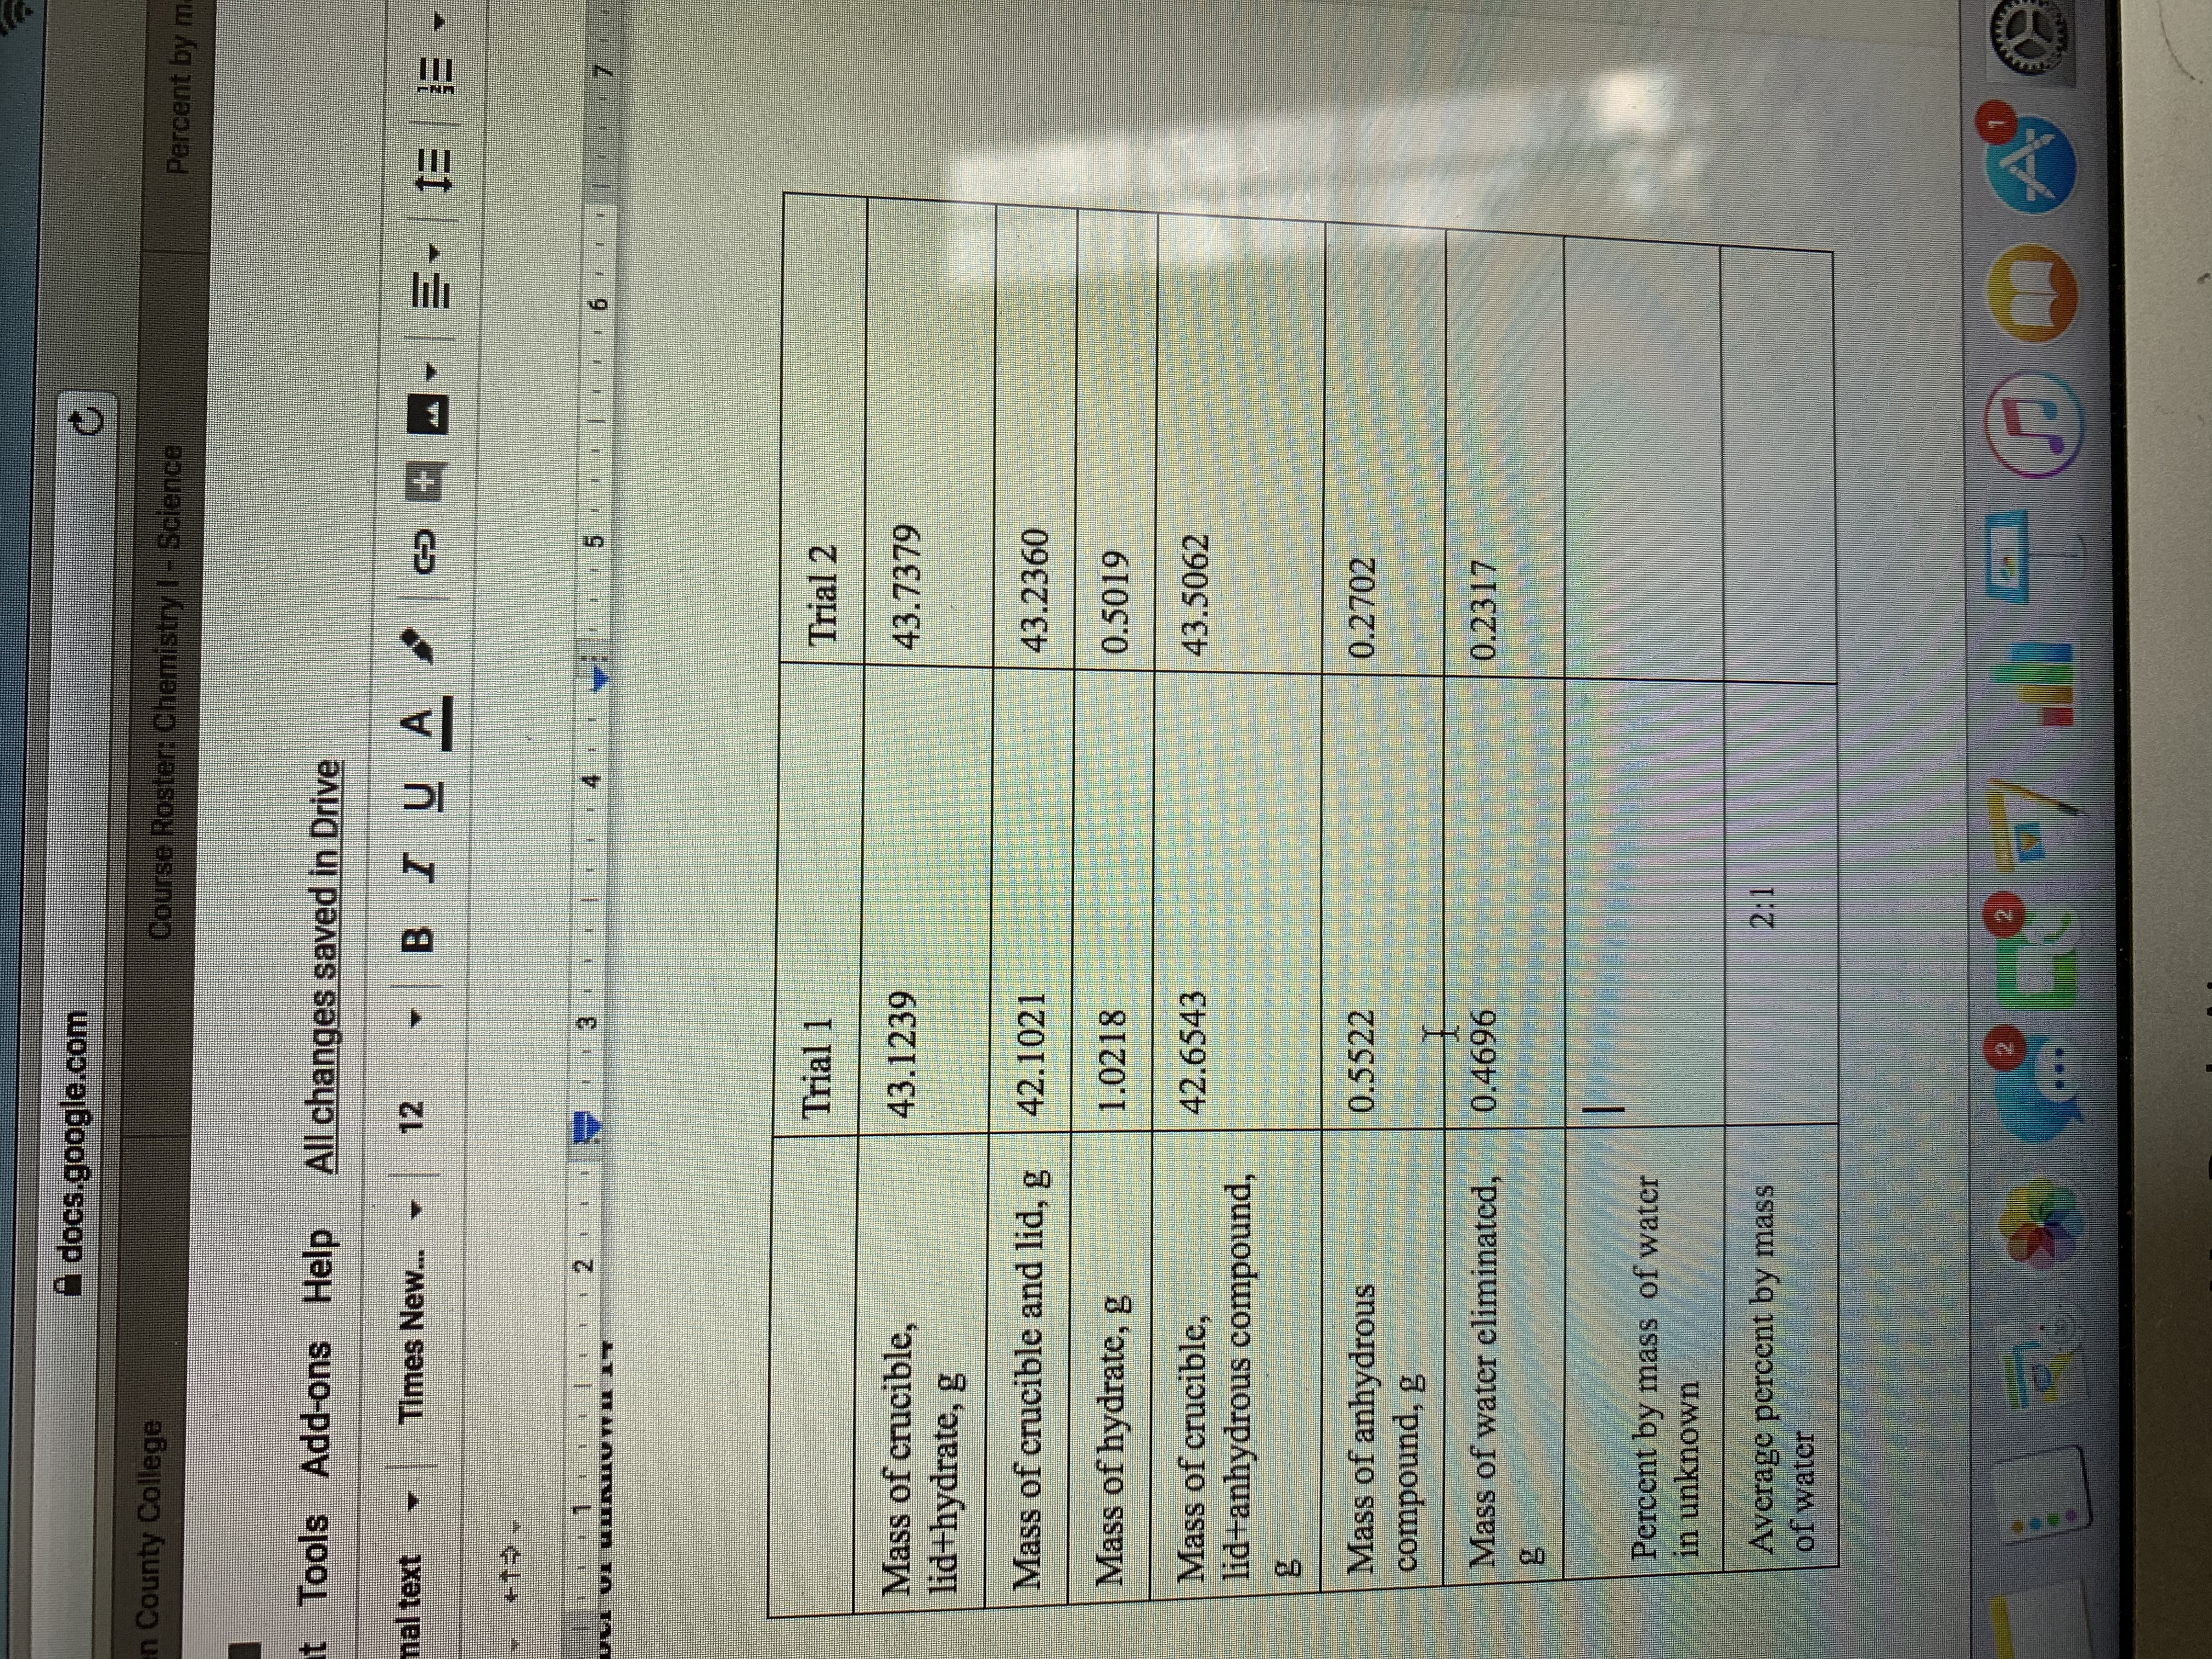 docs.google.com en County College Course Roster, Chemistry l Sclence Percent by ml t Tools Add-ons Help All changes saved in Drive 12 BIU A nal text Times New... +1 2 3 4 5 6 Trial 1 Trial 2 Mass of crucible, lid+hydrate, g 43.1239 43.7379 Mass of crucible and lid, g 42.1021 43.2360 Mass of hydrate, g 1.0218 0.5019 Mass of crucible, 42.6543 43.5062 lid anhydrous compound, Mass of anhydrous compound, g 0.5522 0.2702 Mass of water eliminated, 0.2317 0.4696 Percent by mass of water in unknown 2:1 Average percent by mass of water N